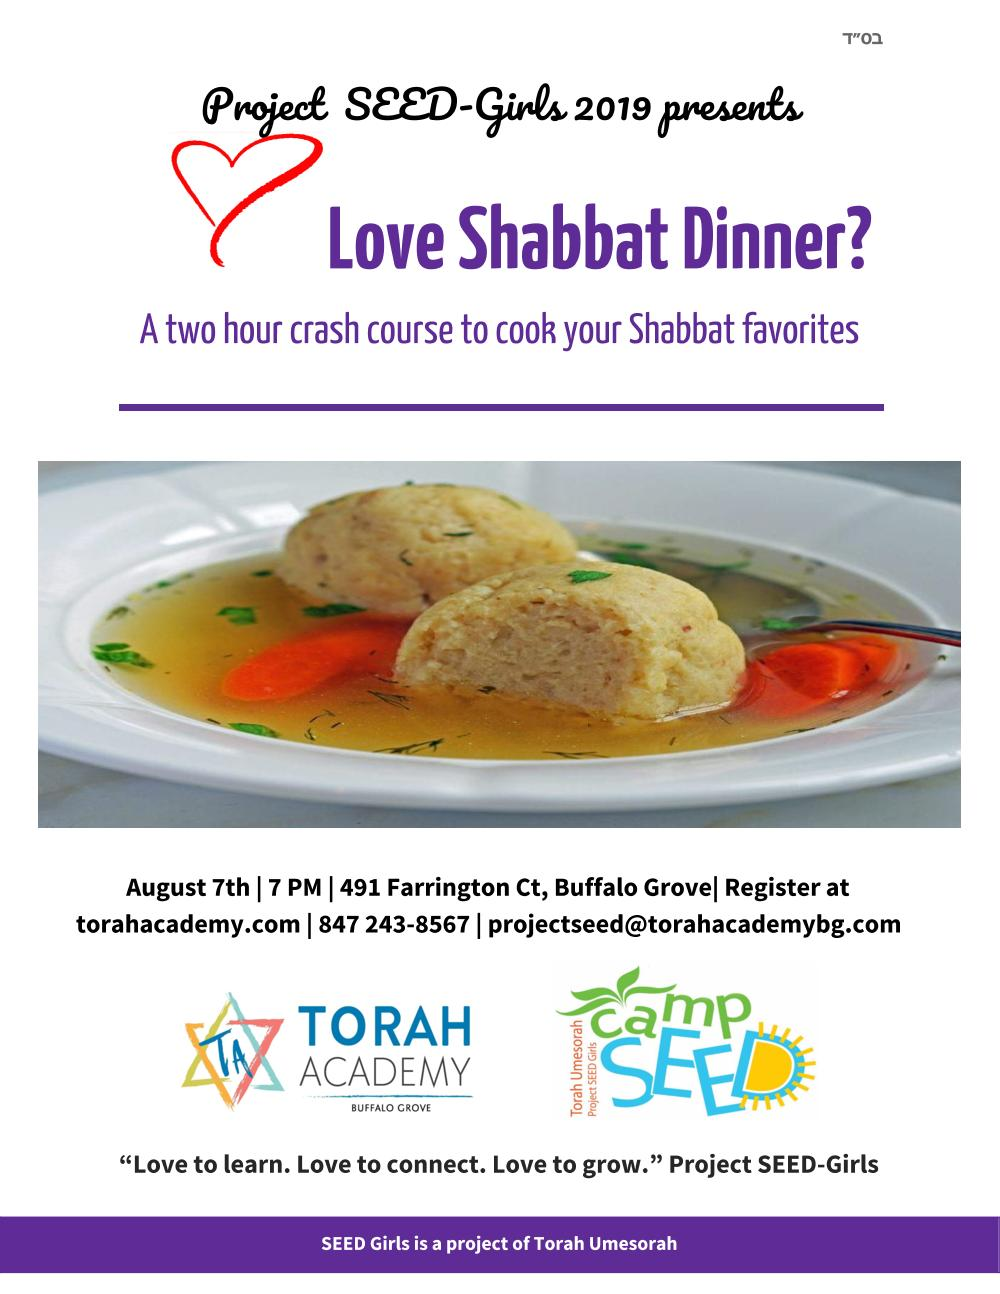 Shabbat themed cooking show demo. Learn some great recipes and how to prepare Shabbat delicacies with ease.  $10